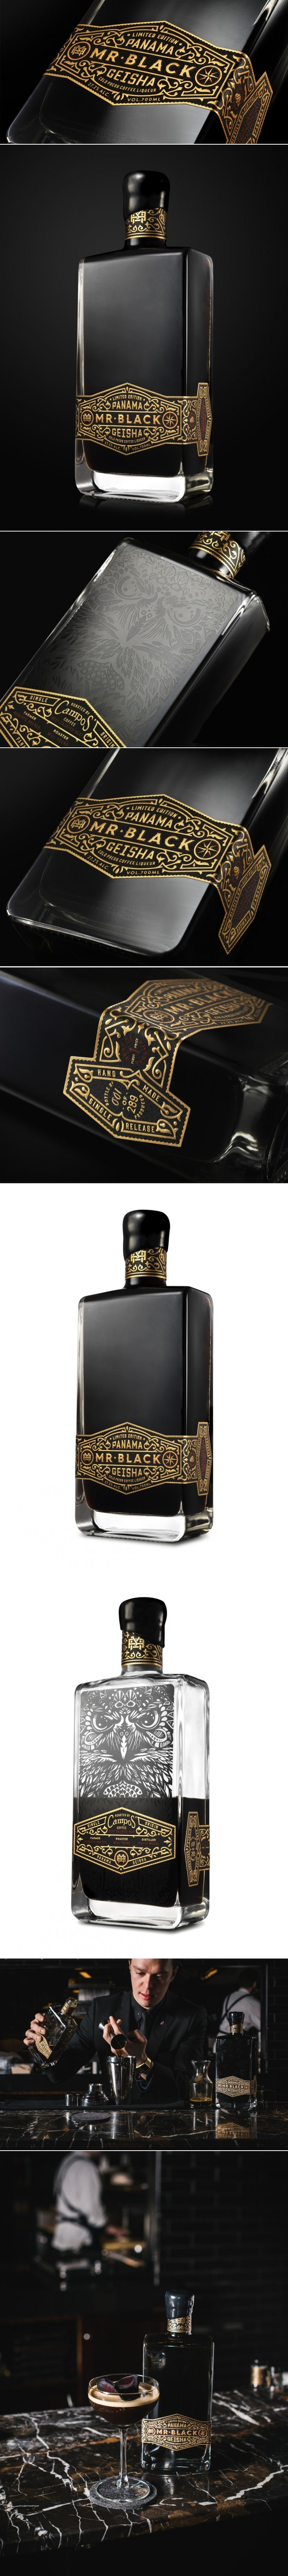 Mr. Black Panama Geisha — The Dieline - Branding & Packaging Design... - a grouped images picture - Pin Them All